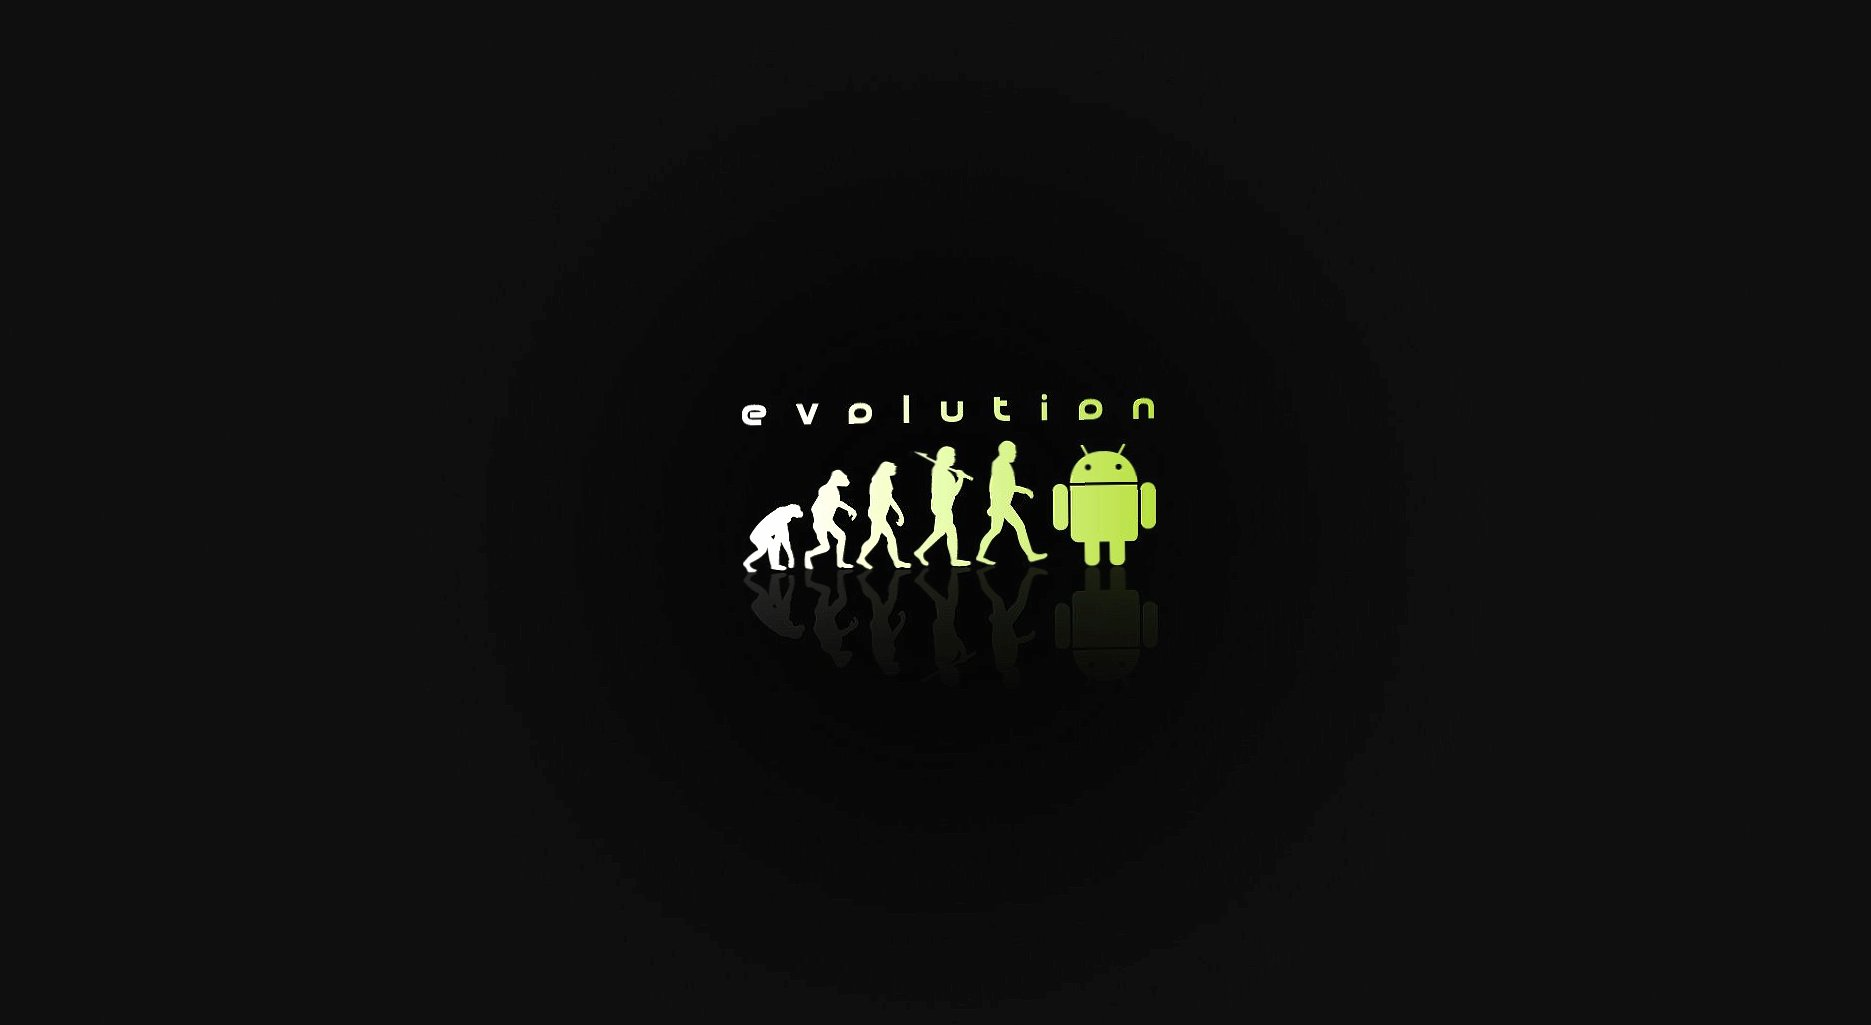 Evolution android wallpapers HD quality